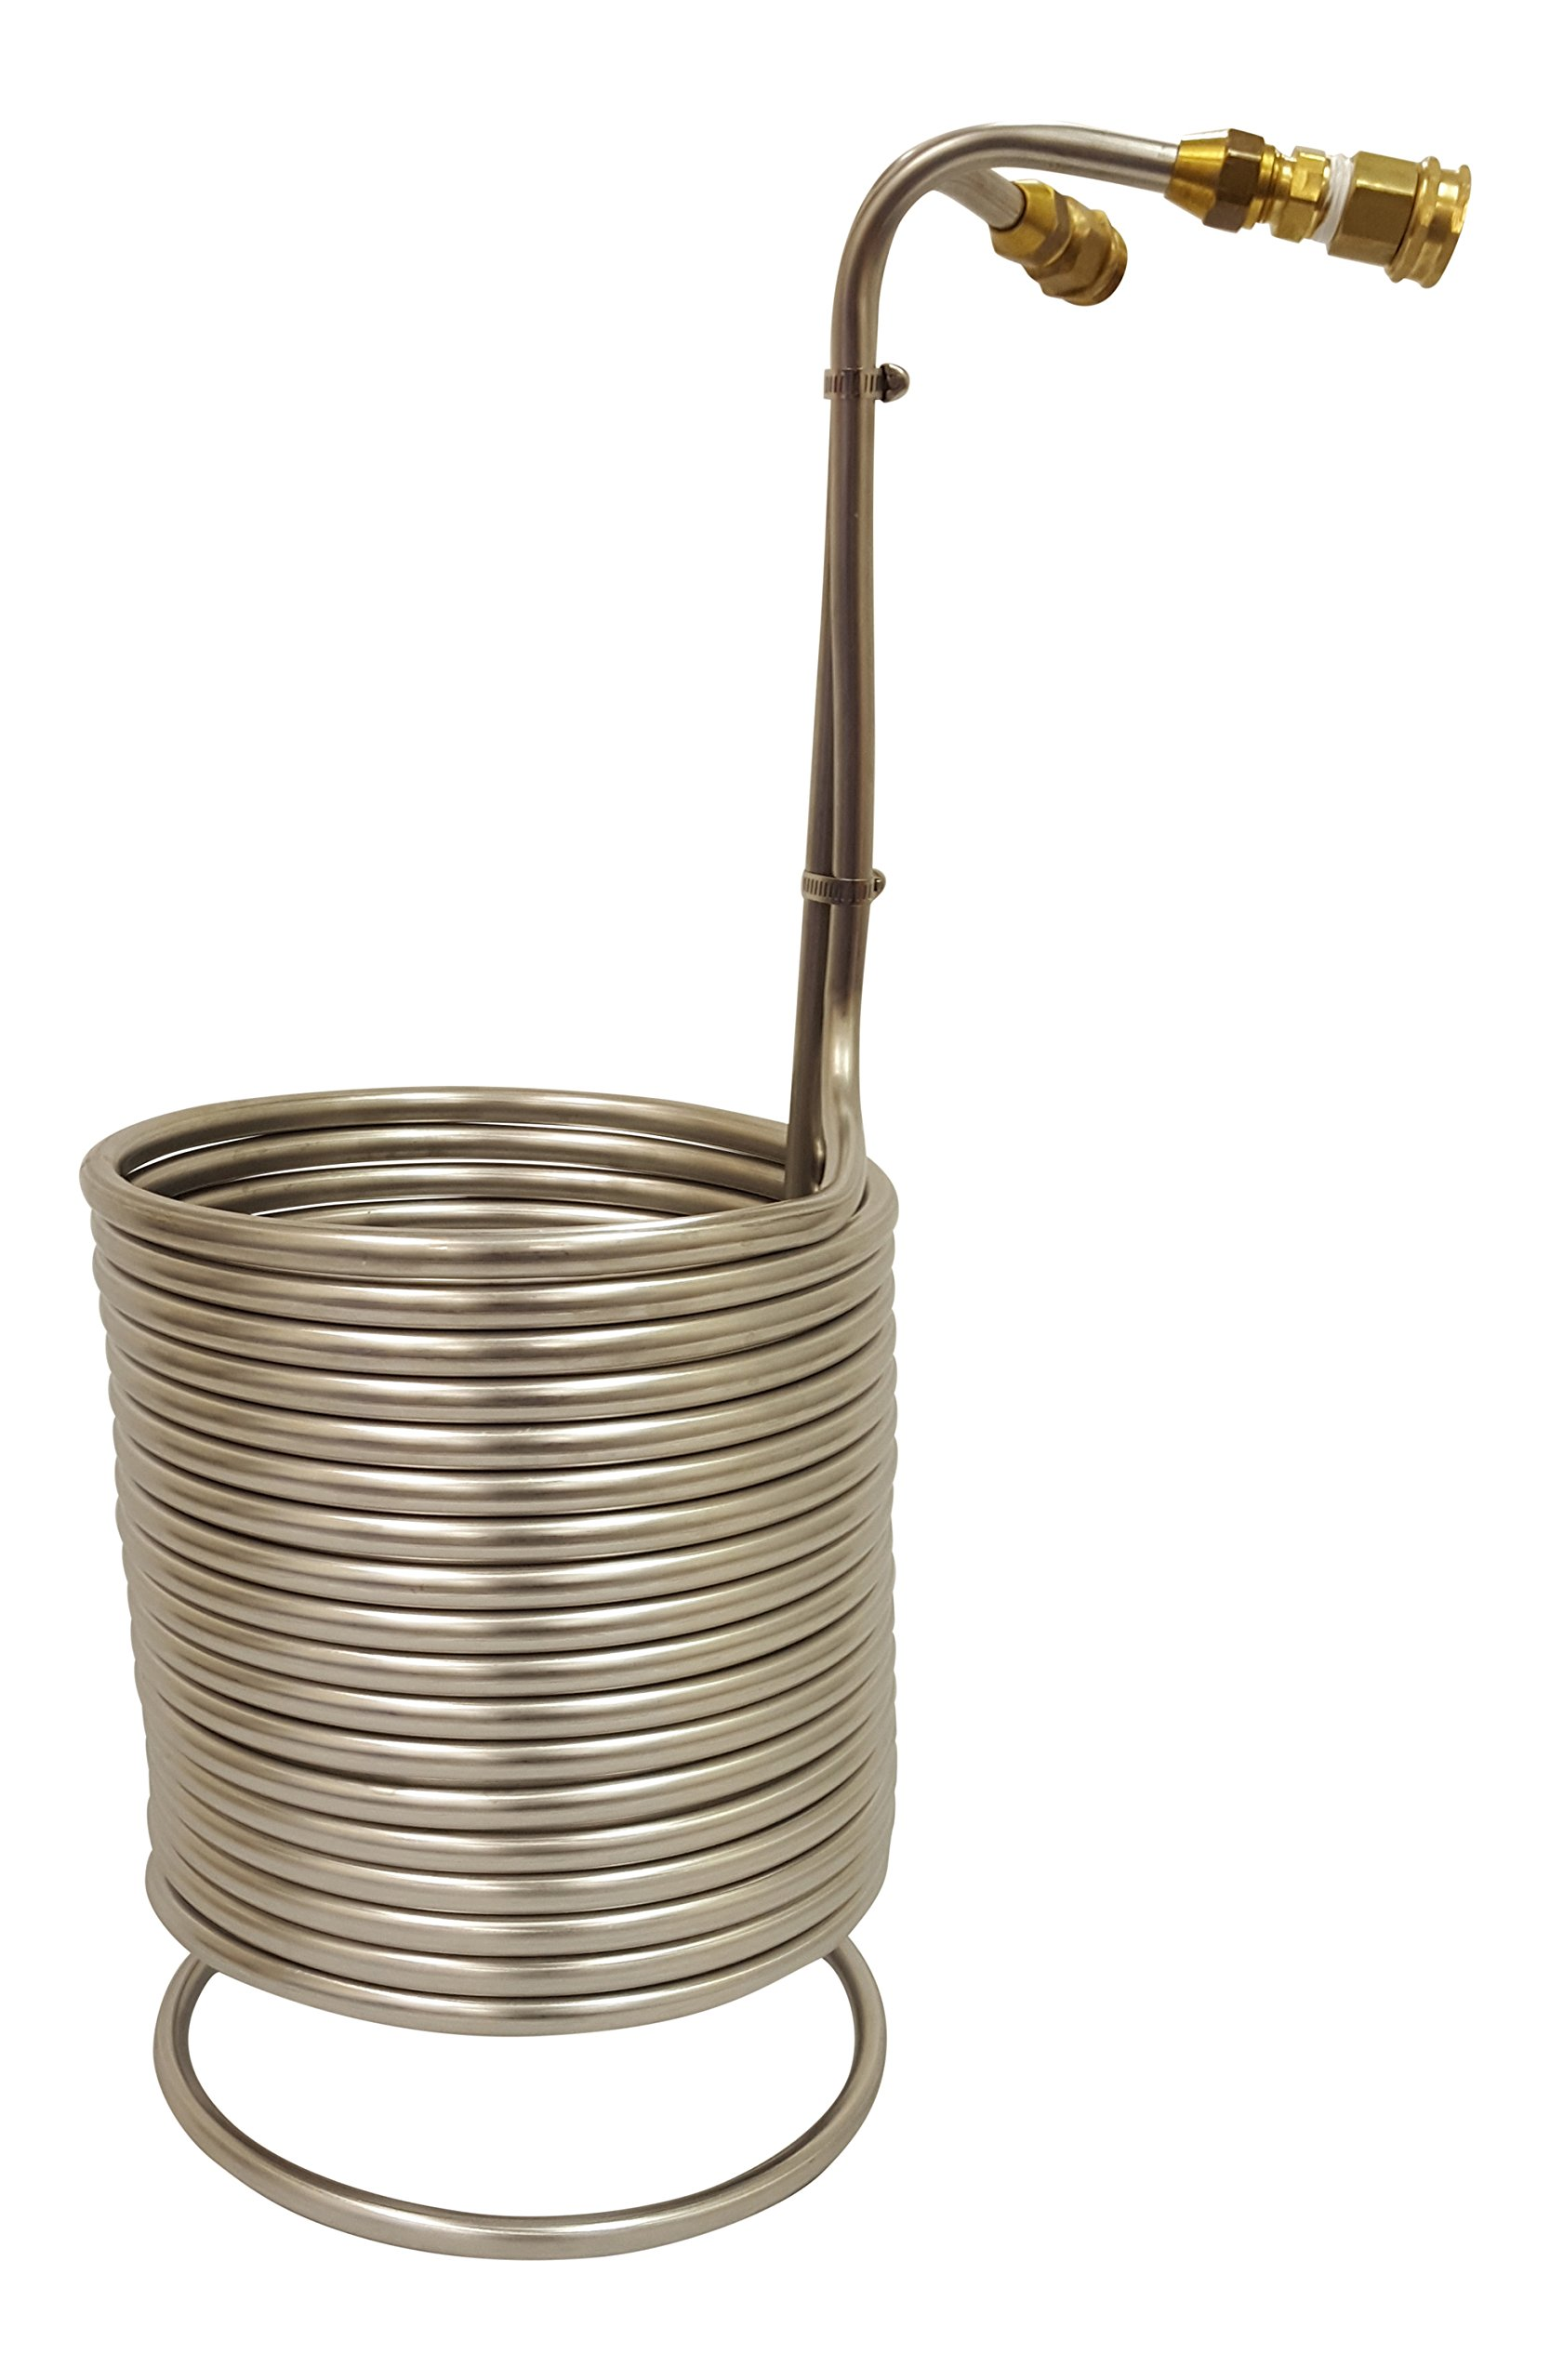 NY Brew Supply Stainless Wort Chiller with Garden Hose Fittings, 1/2'' x 50', Silver by NY Brew Supply